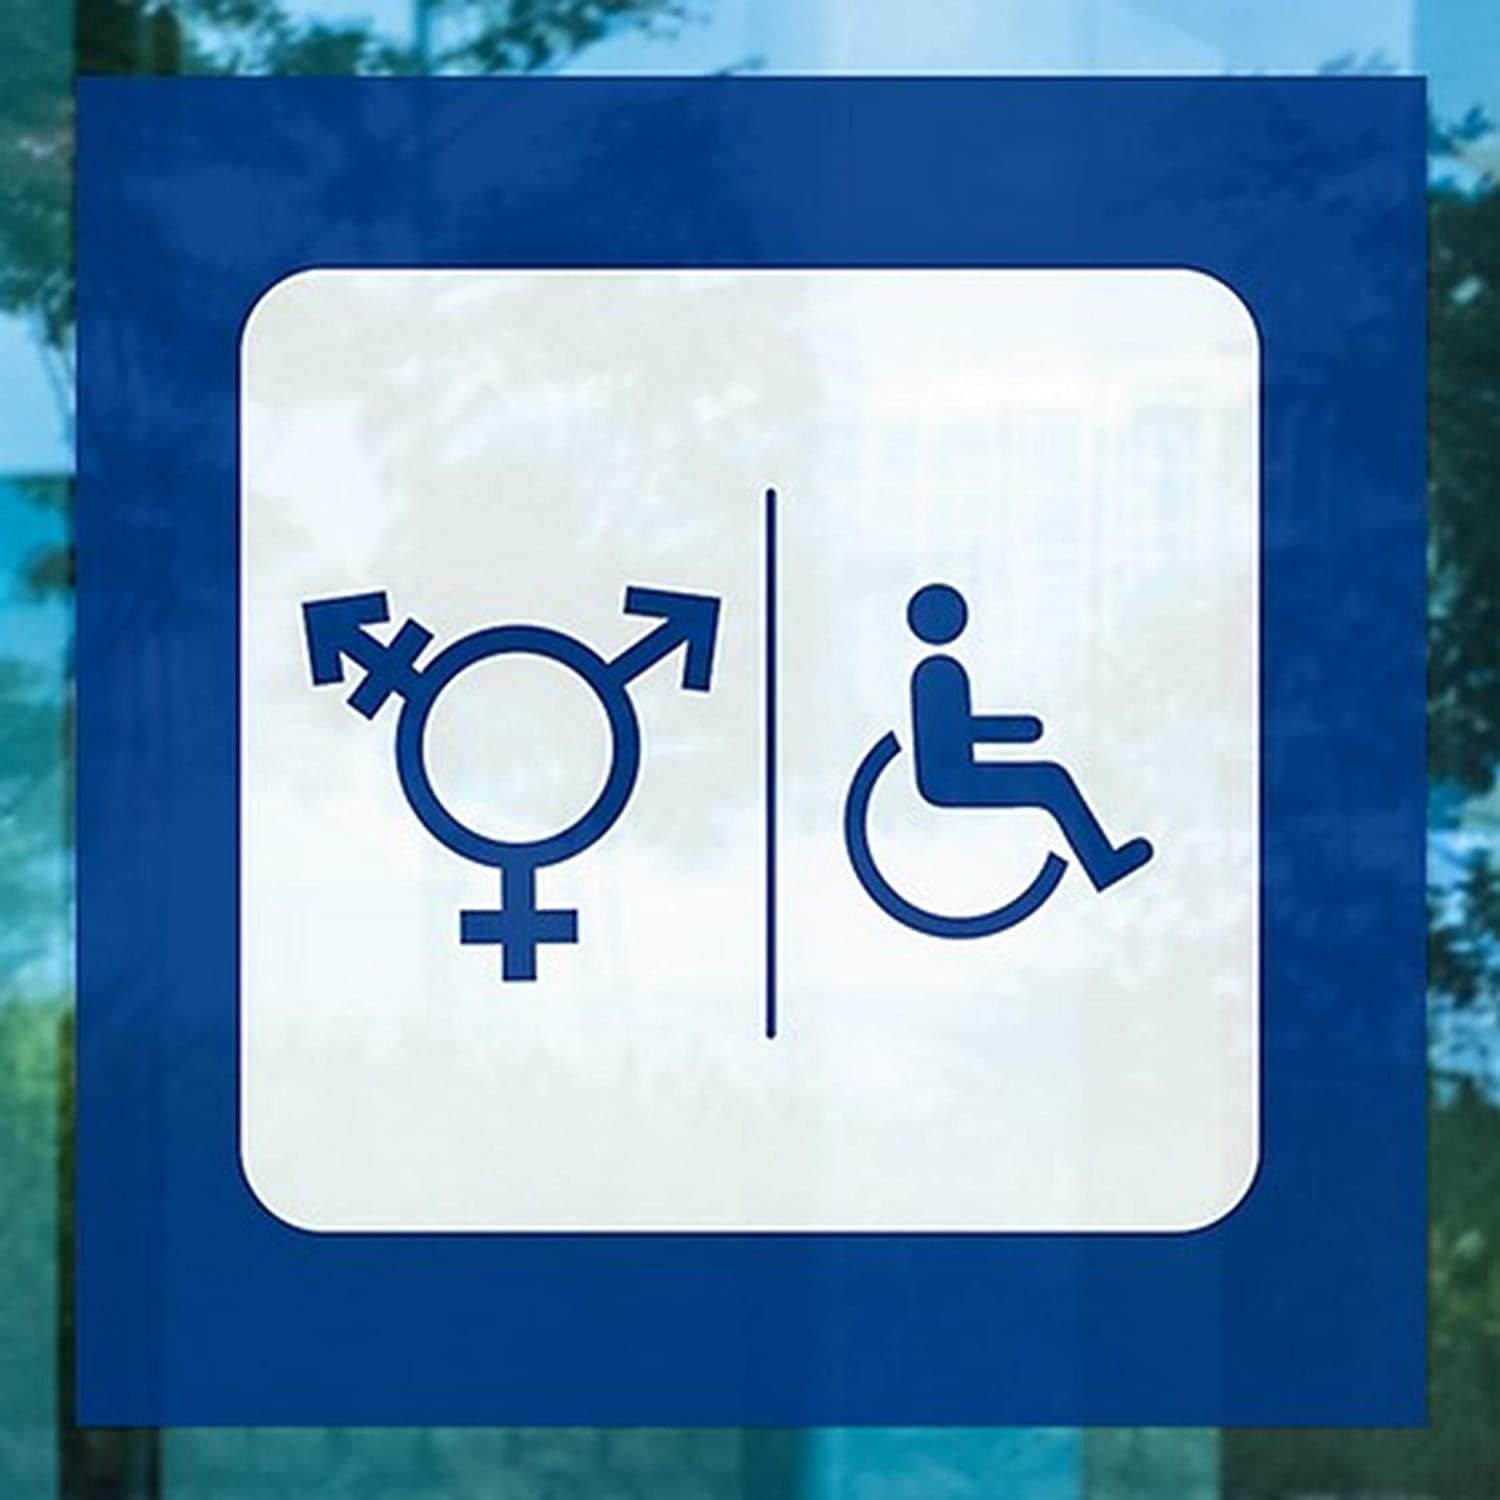 CGSignLab 2439189/_5gfxw/_12x12/_None Transgender /& Handicapped Restroom Symbols in Blue /& White Repositionable Opaque White 1st Surface Static-Cling Non-Adhesive Decal 12 x 12 Vinyl Pack of 5